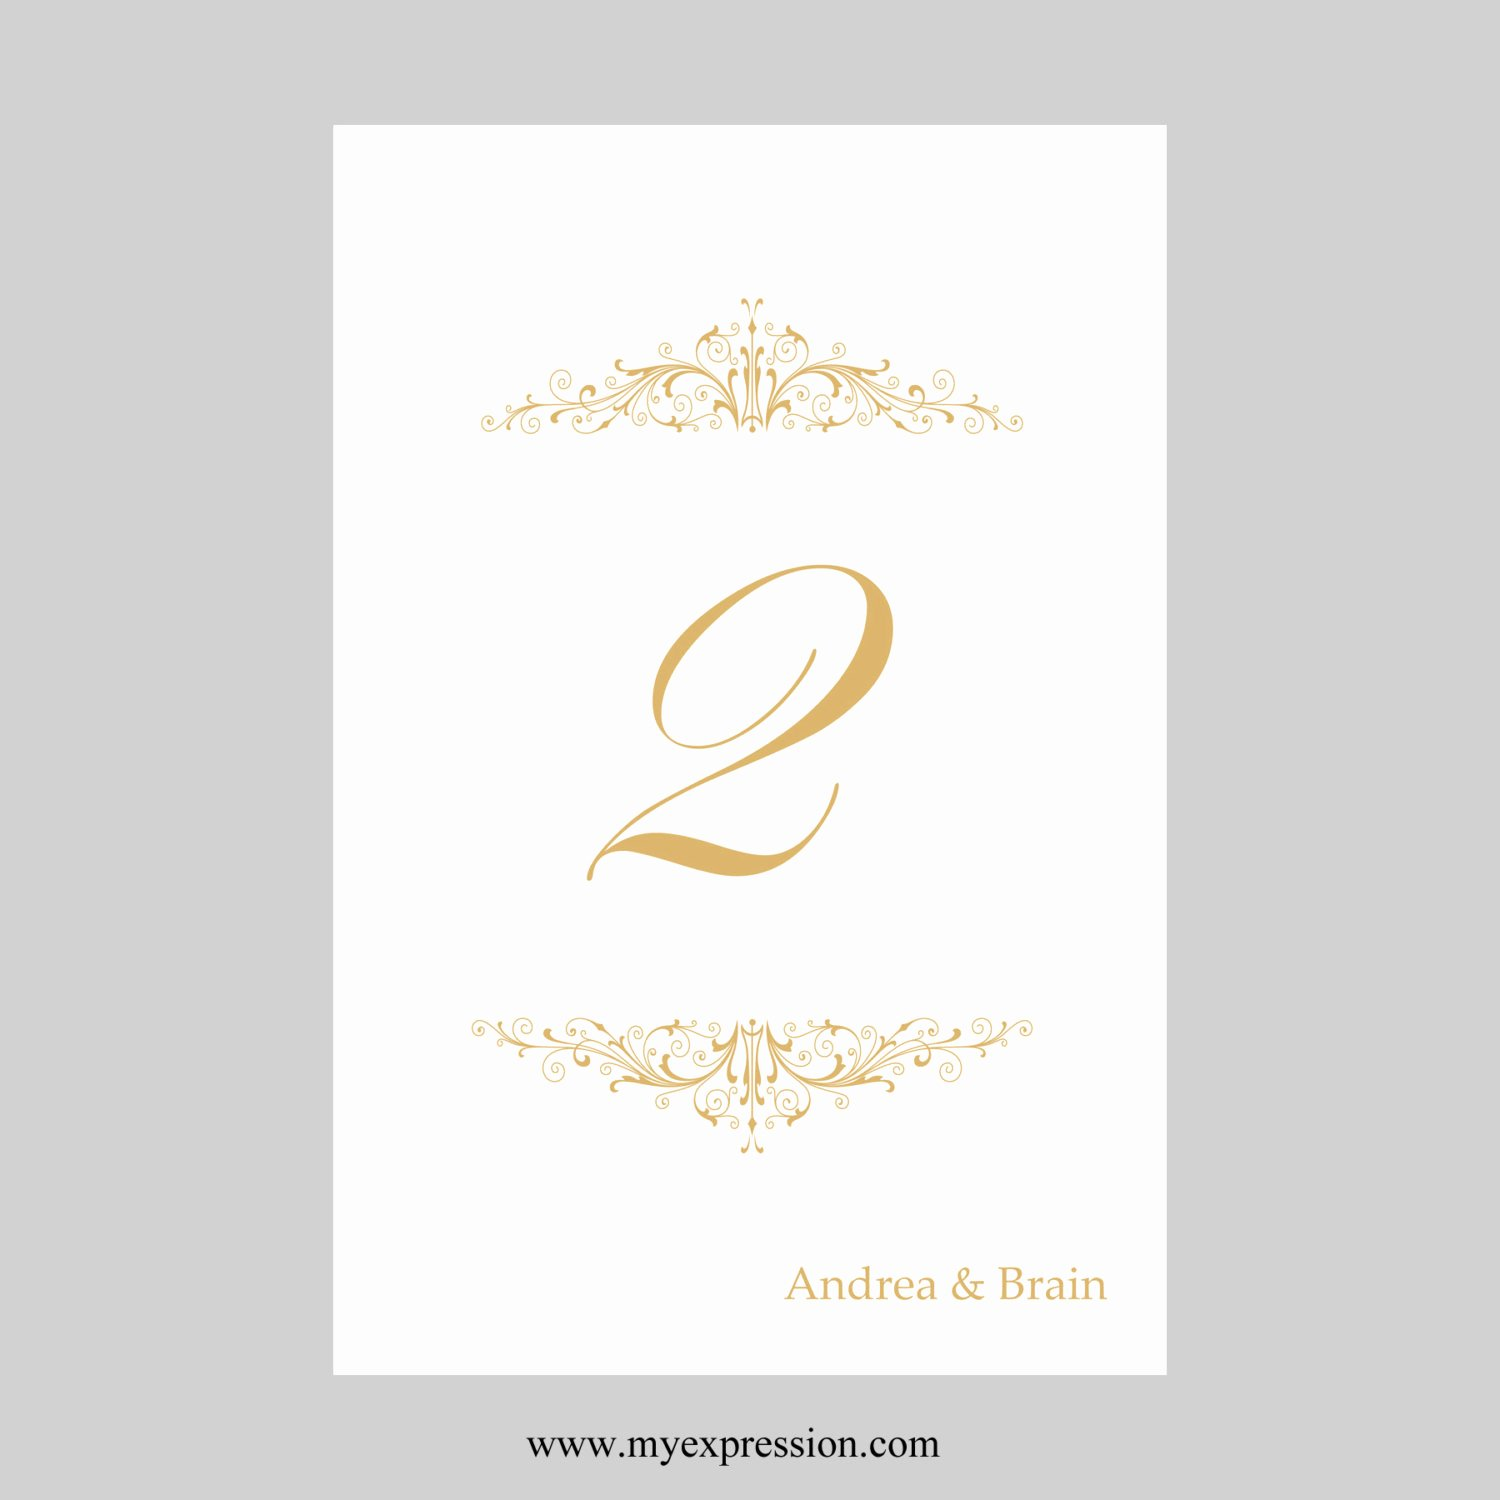 Wedding Table Numbers Template Inspirational Wedding Table Number Card Template 4x6 Flat Vintage